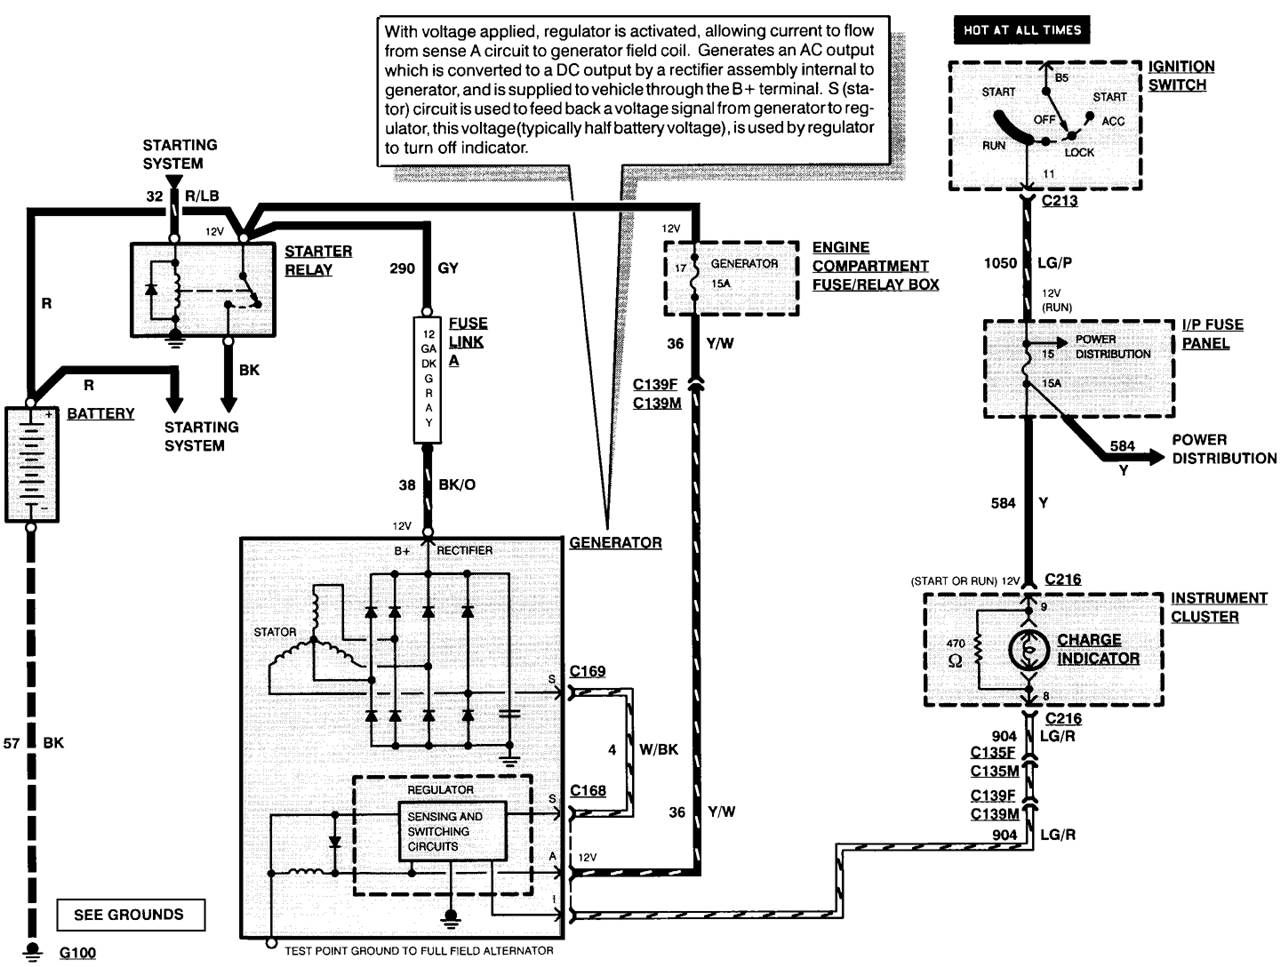 Ford alternator wiring diagram internal regulator 1994 f700 wiring diagram on 1994 download wirning diagrams 1992 ford f700 wiring diagram at bayanpartner.co